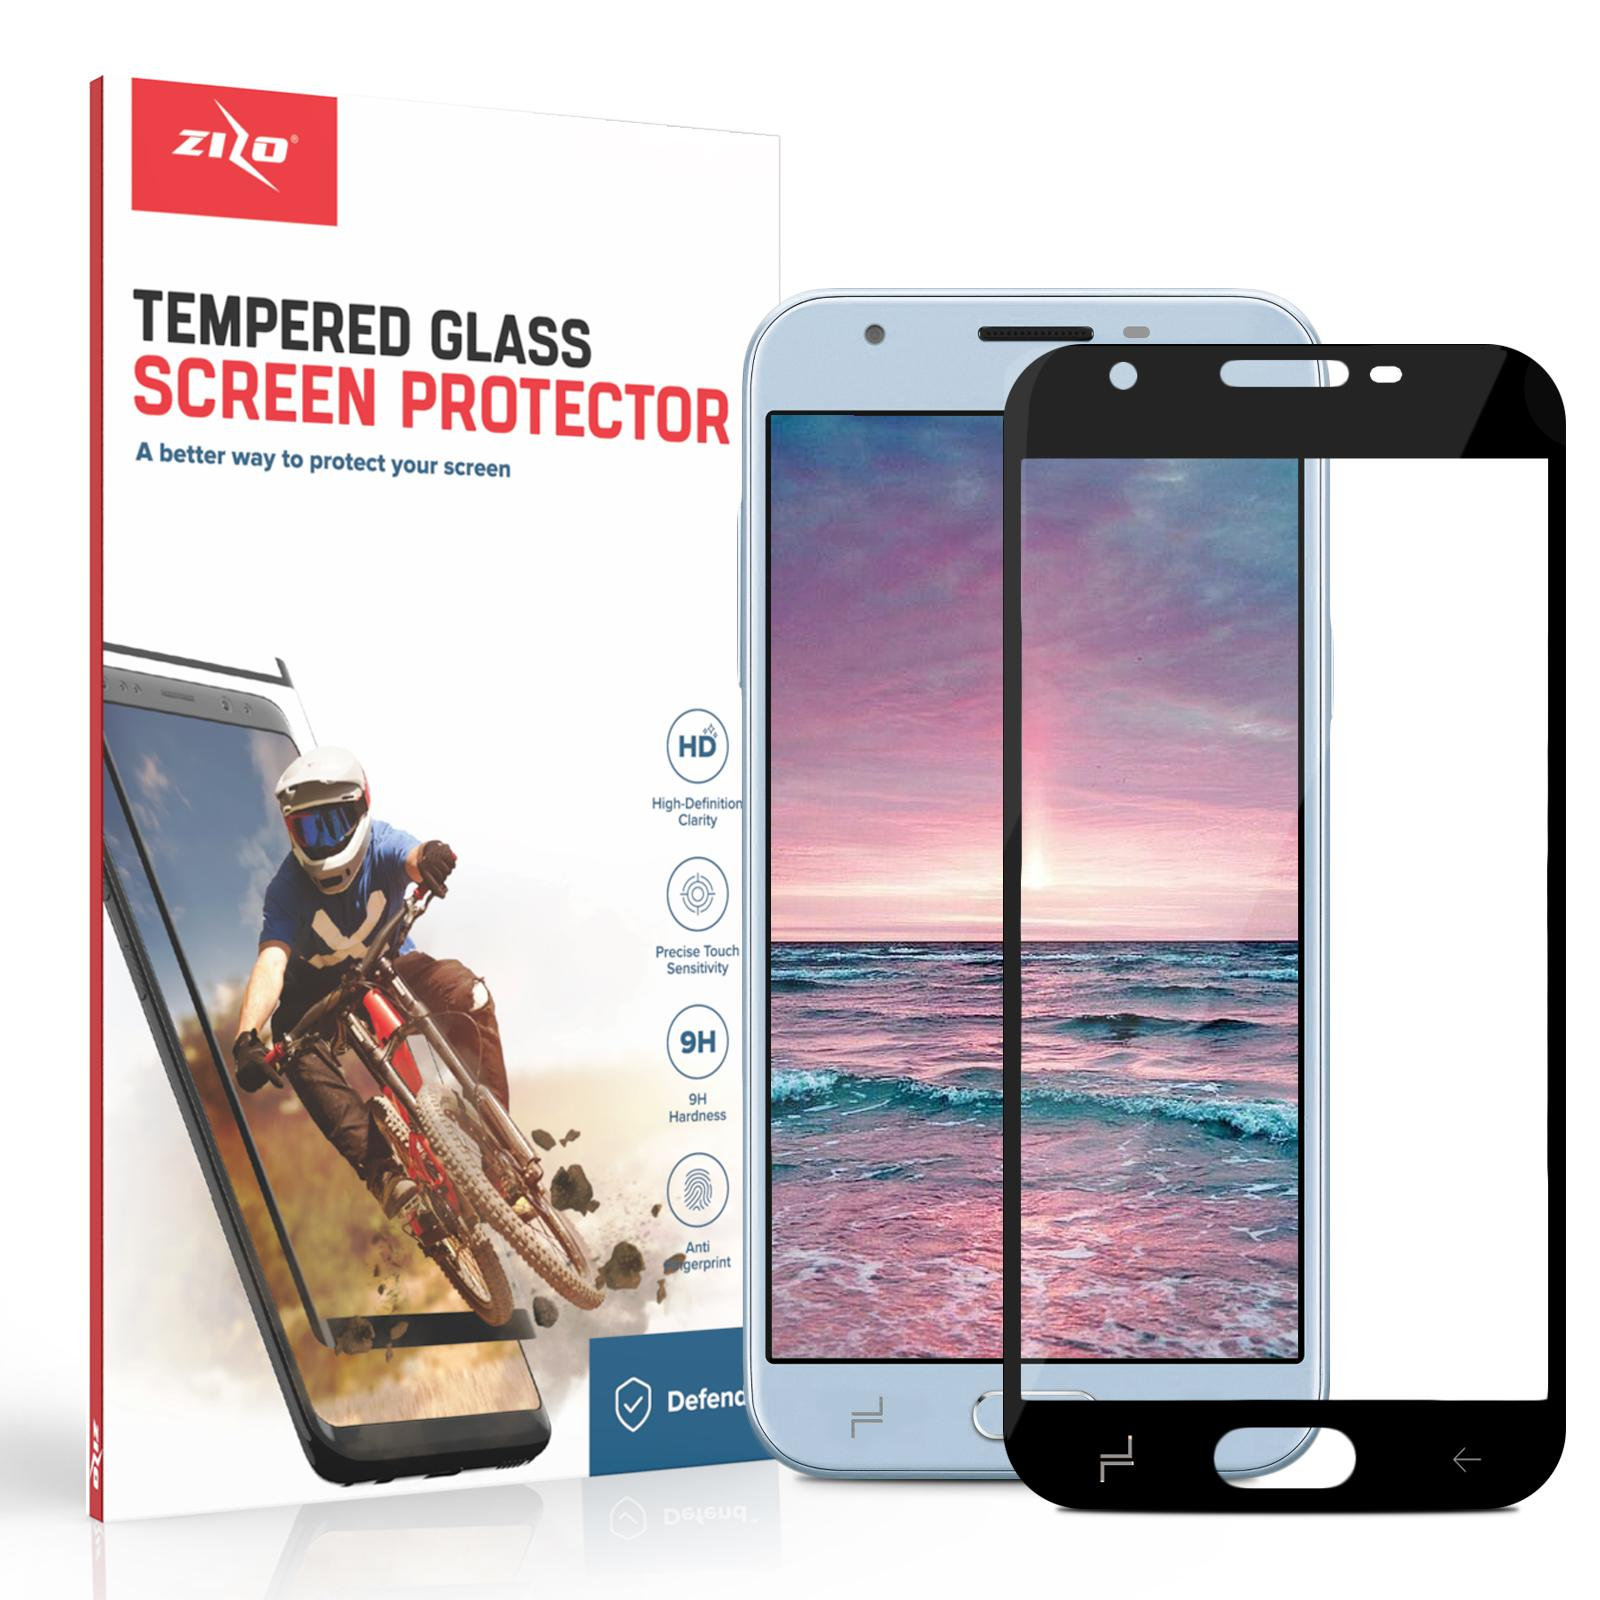 Full Glue Lightning Shield Samsung Galaxy Amp Prime 3 / J3 2018 Tempered Glass Screen Protector